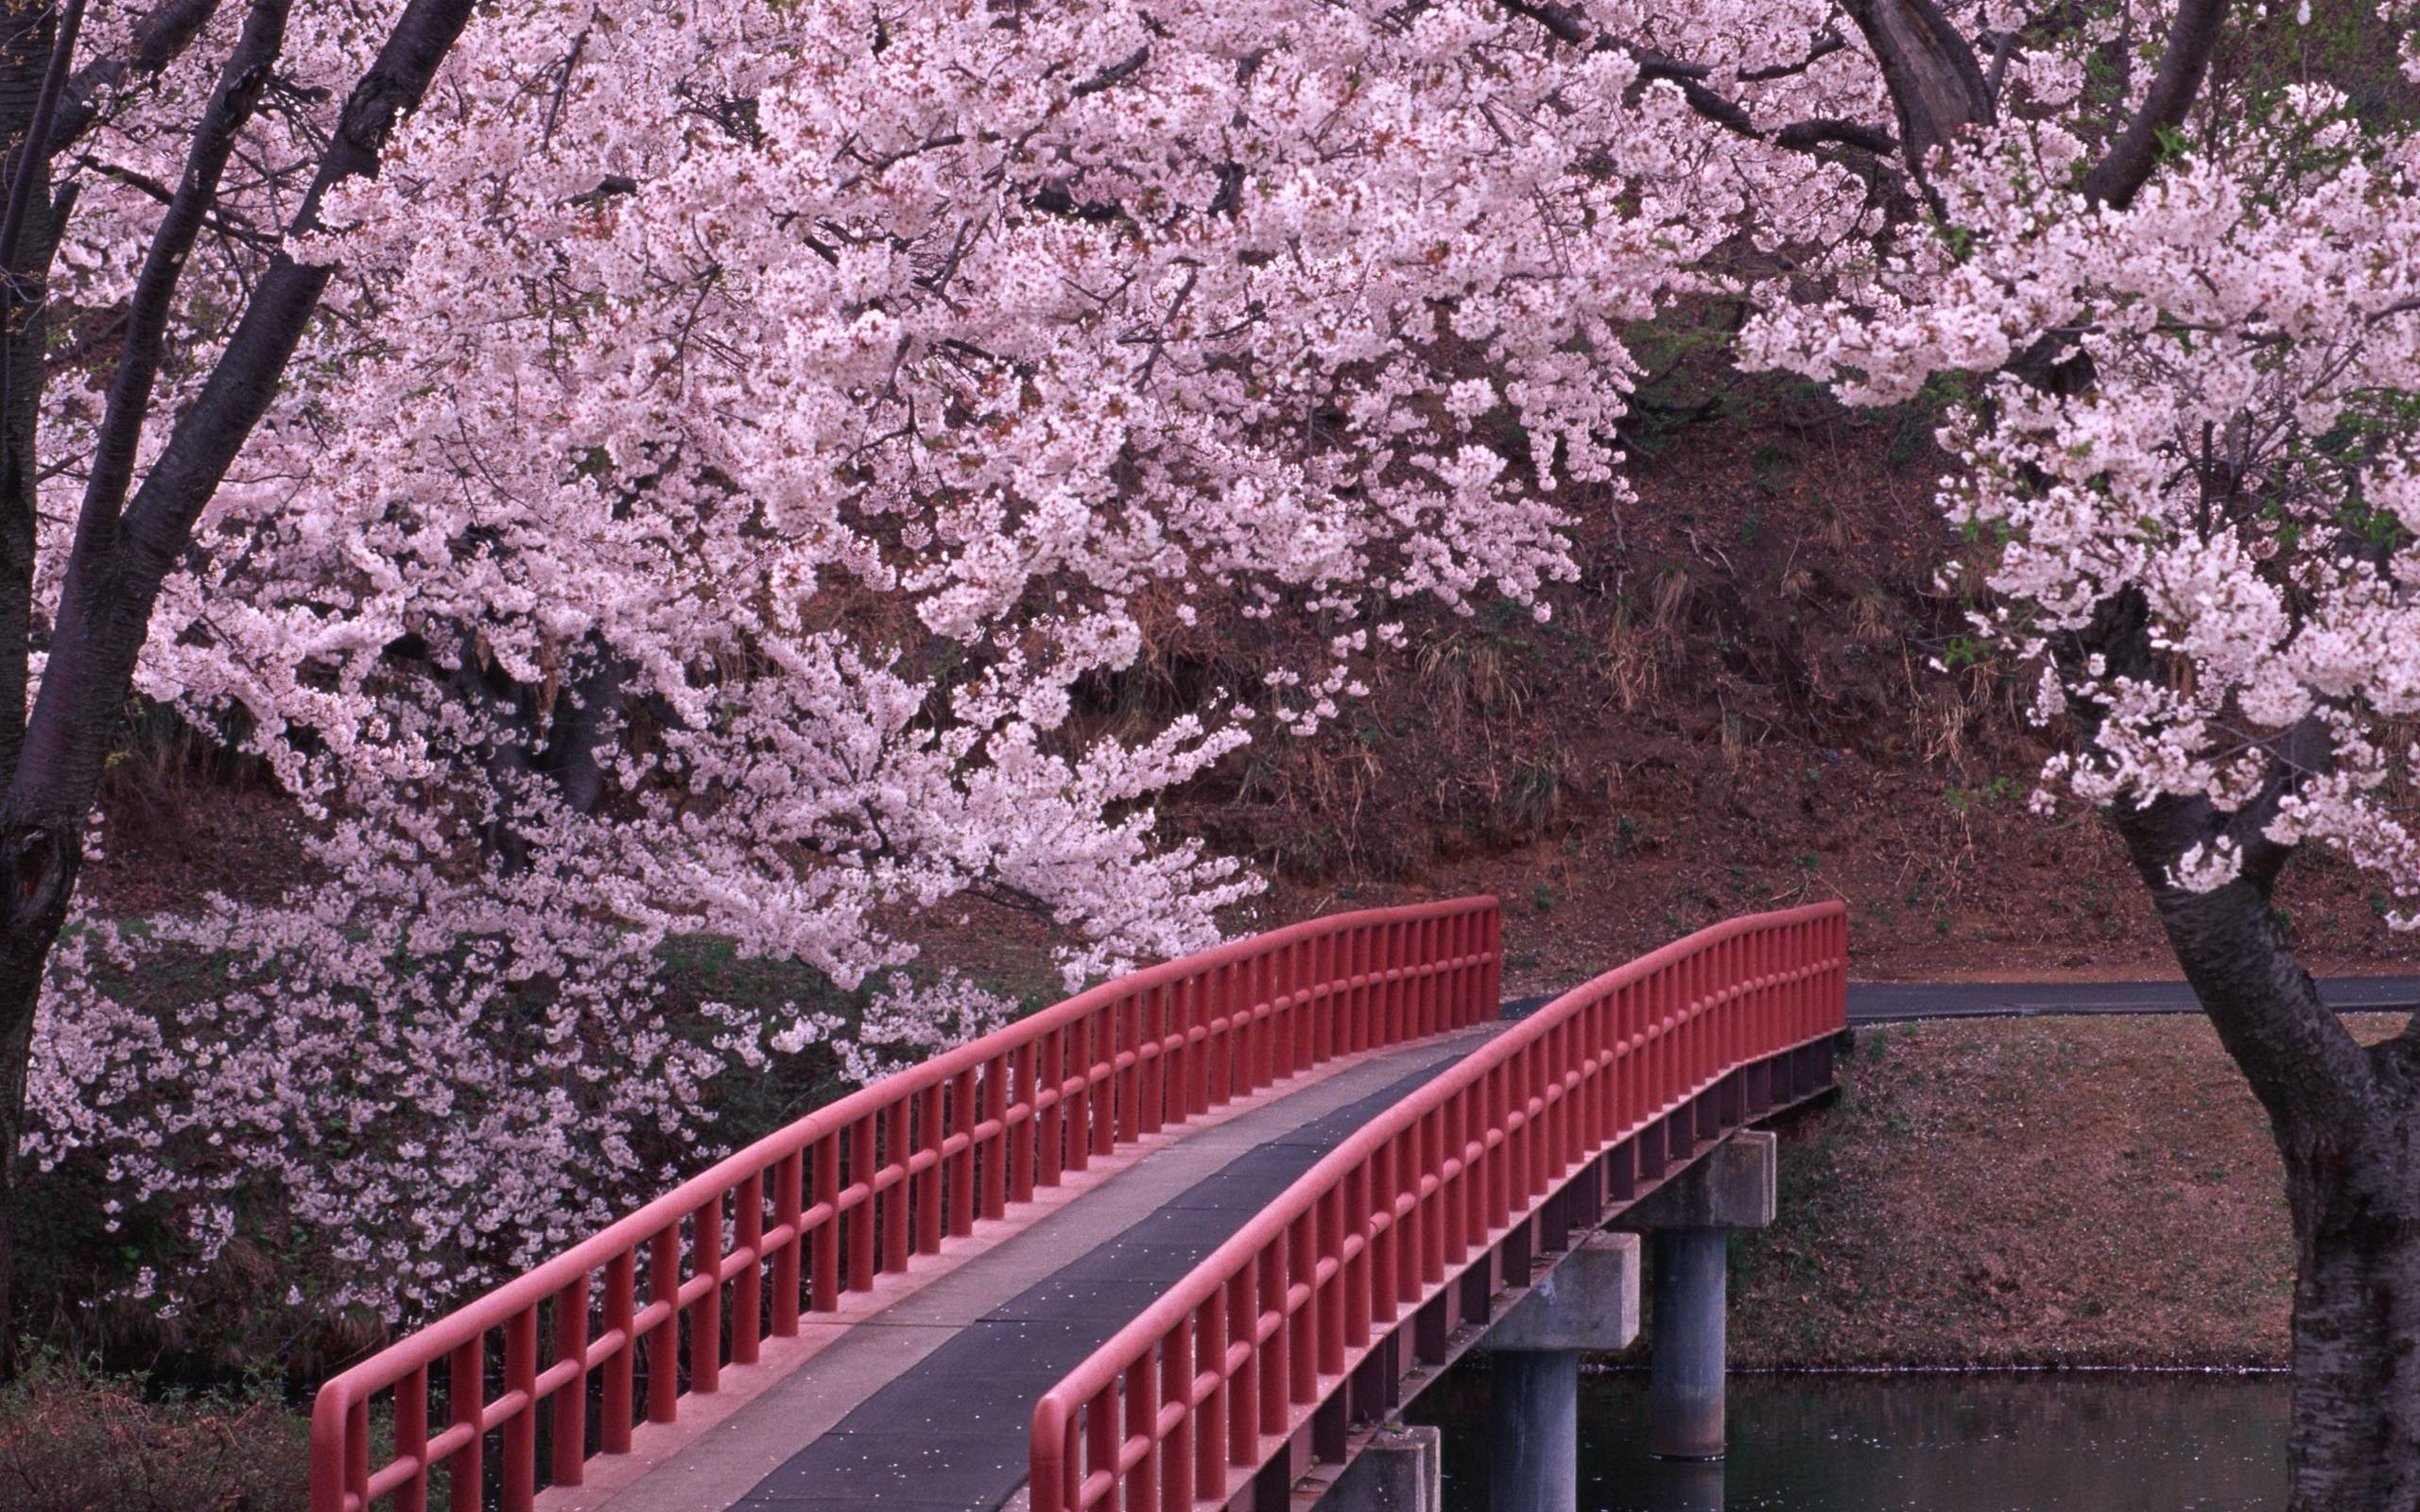 2560x1600 Wallpapers For Japanese Cherry Blossom Wallpaper Anime